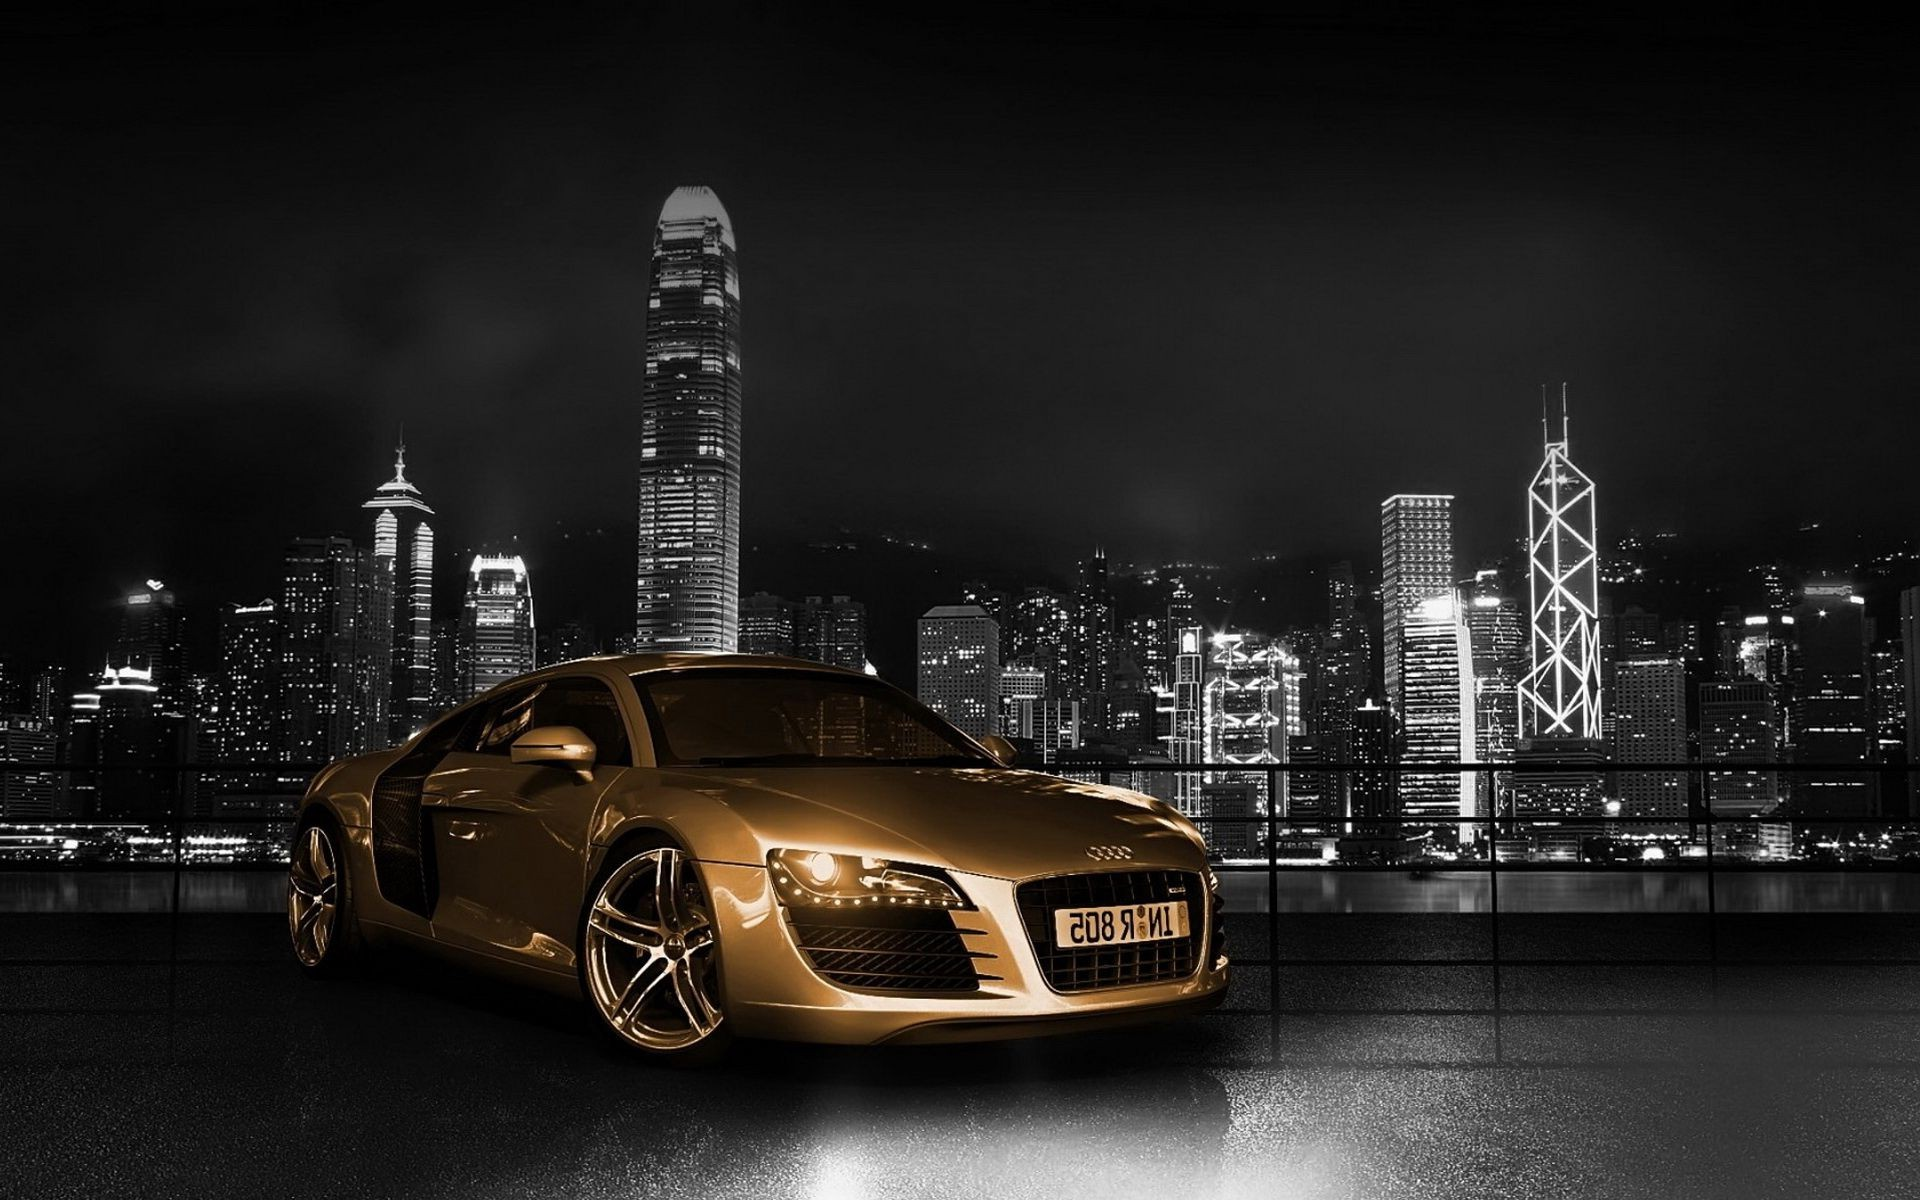 Wallpaper Android Mobile Sport: Auto Moto Tuning Equipment Sports Girls Wallpaper Pictures